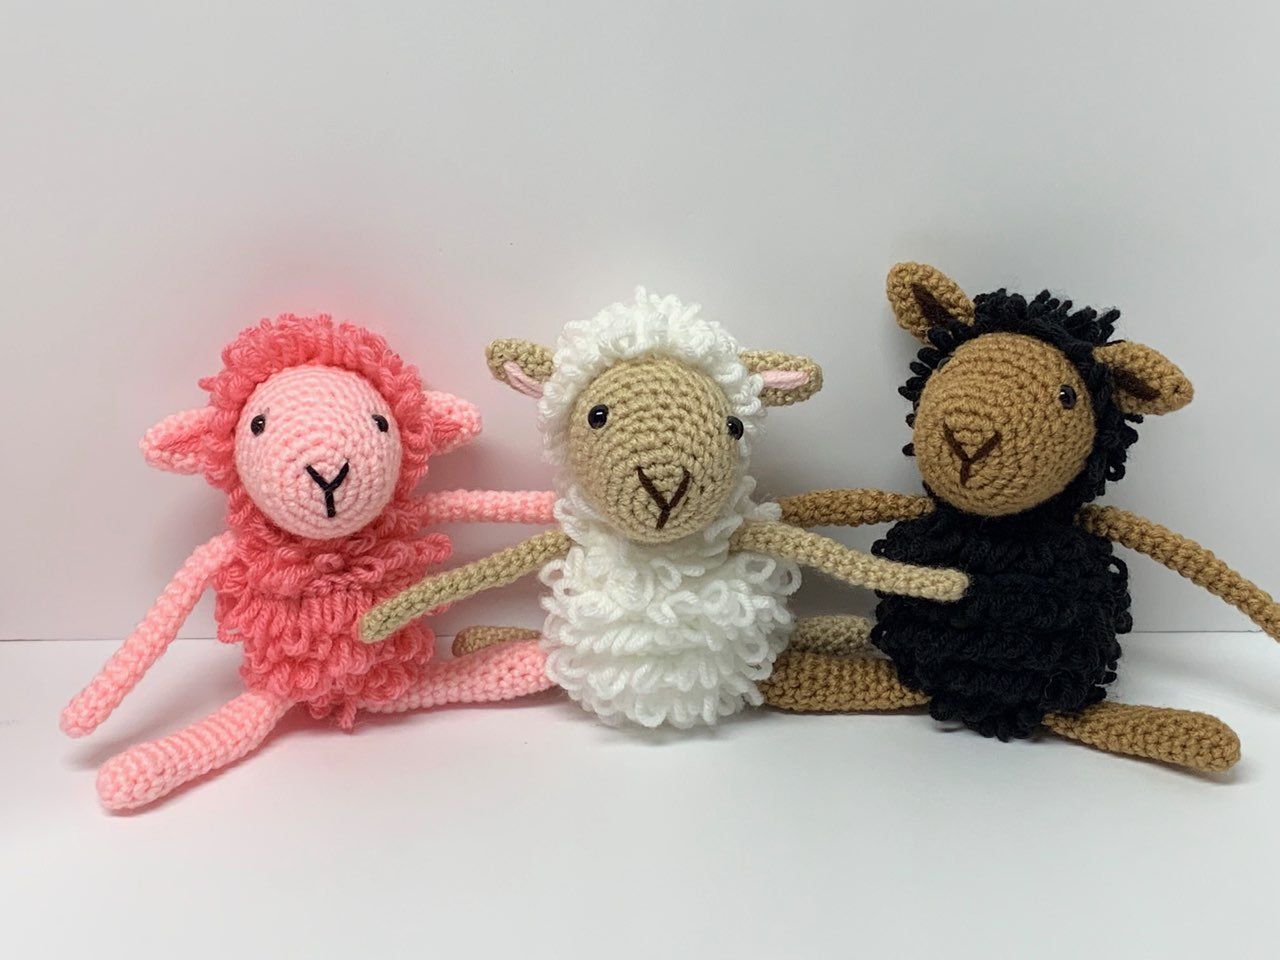 The Sweetest Crochet Lamb Patterns for Free Crochet Lamb Pattern Amigurumi Sheep Pdf Pattern Amigurumi Etsy